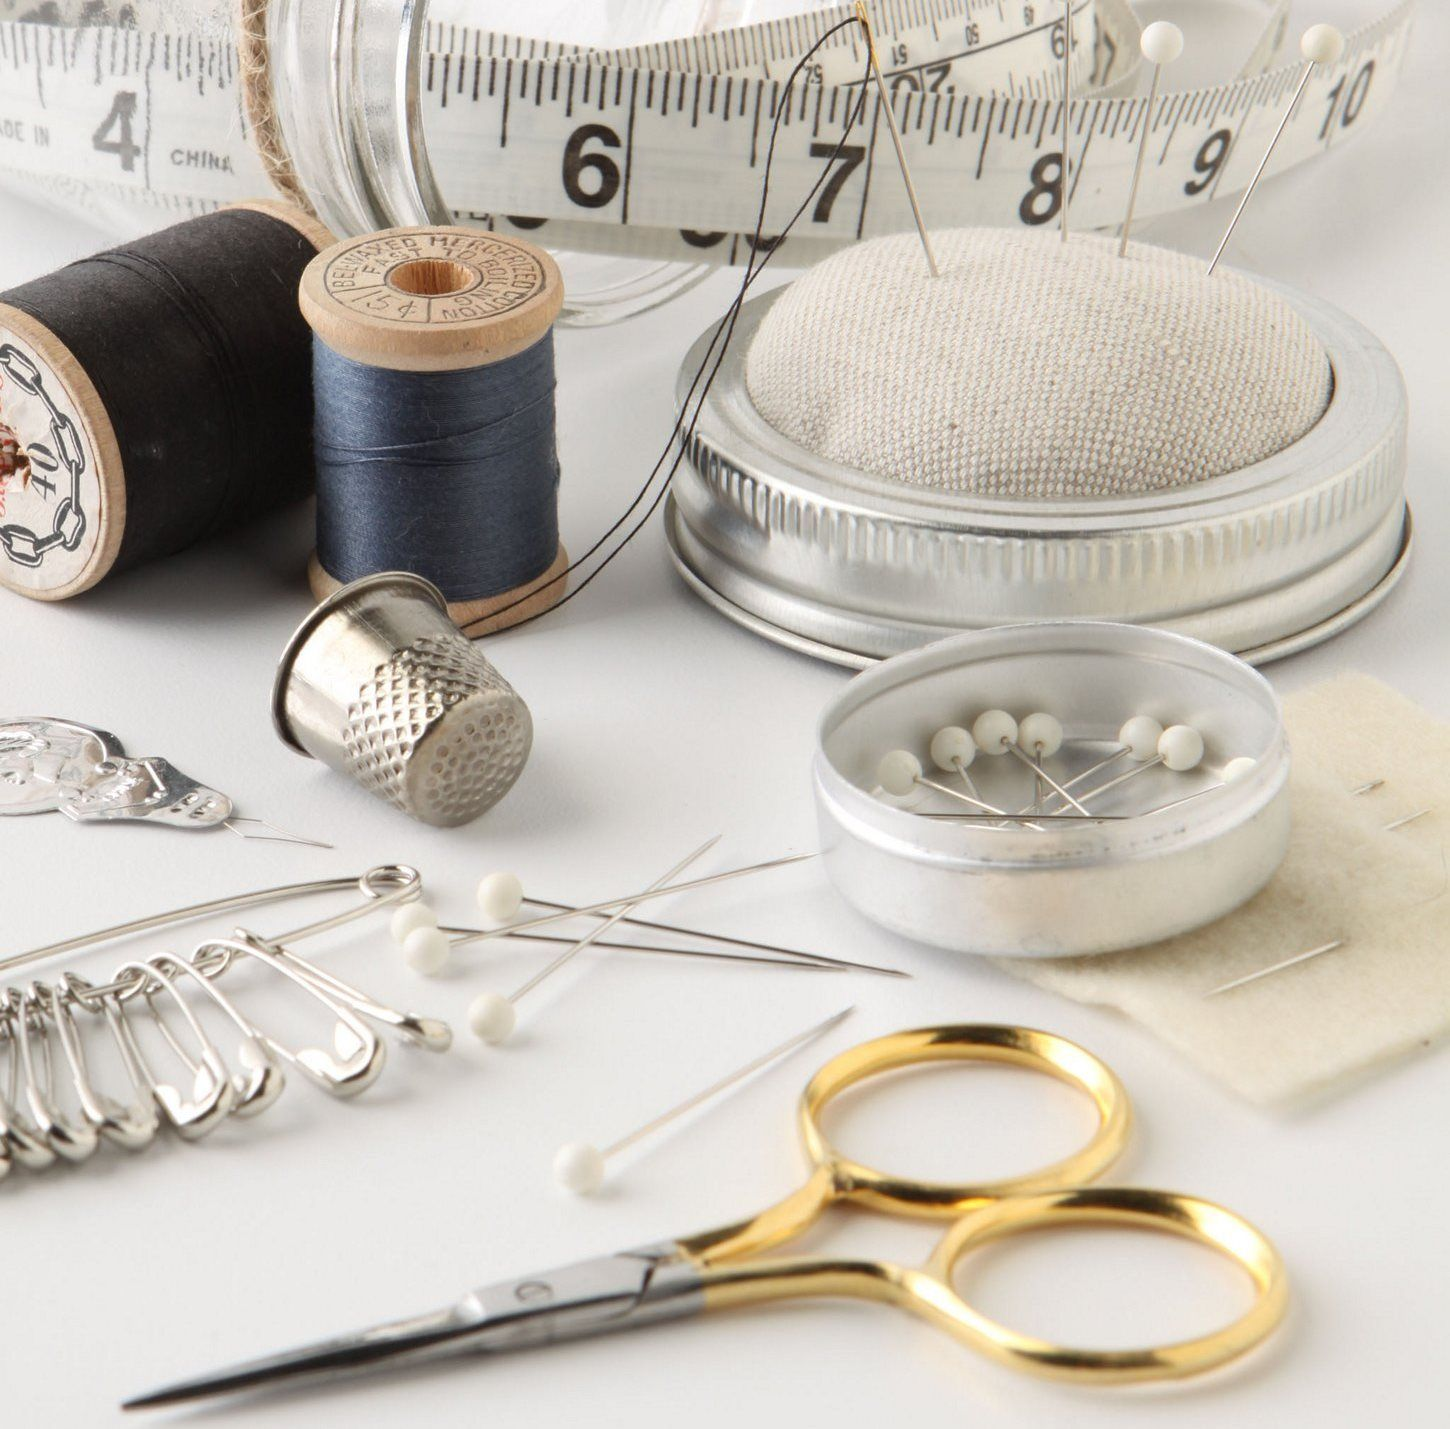 mason-jar-sewing-kit-materials.jpg